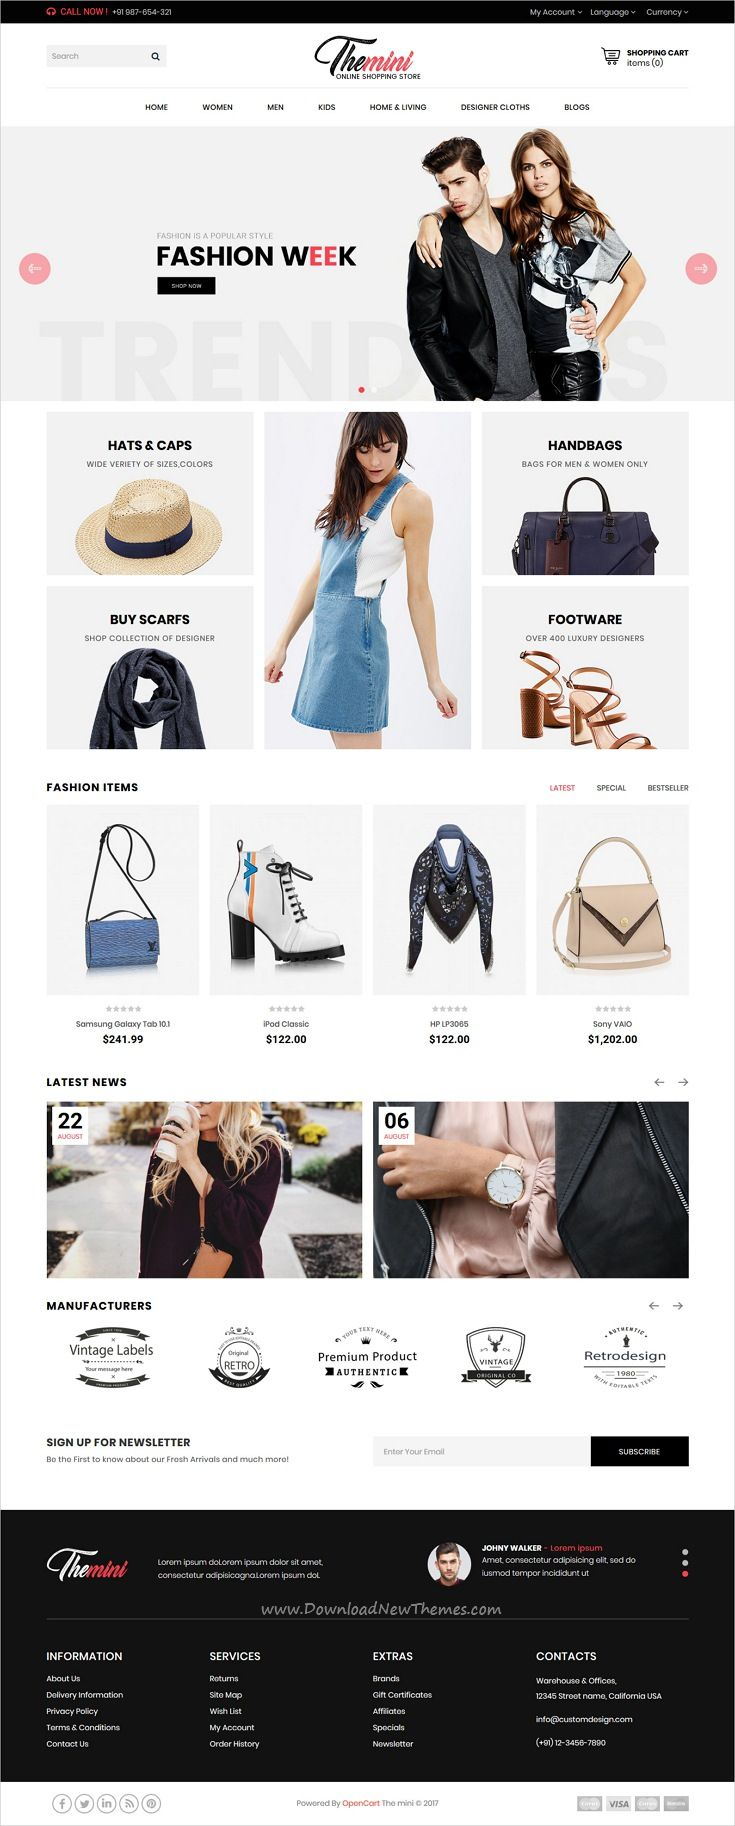 Themini is clean and modern design 3in1 responsive #OpenCart theme for stunning #fashion store eCommerce website download now #webdesign